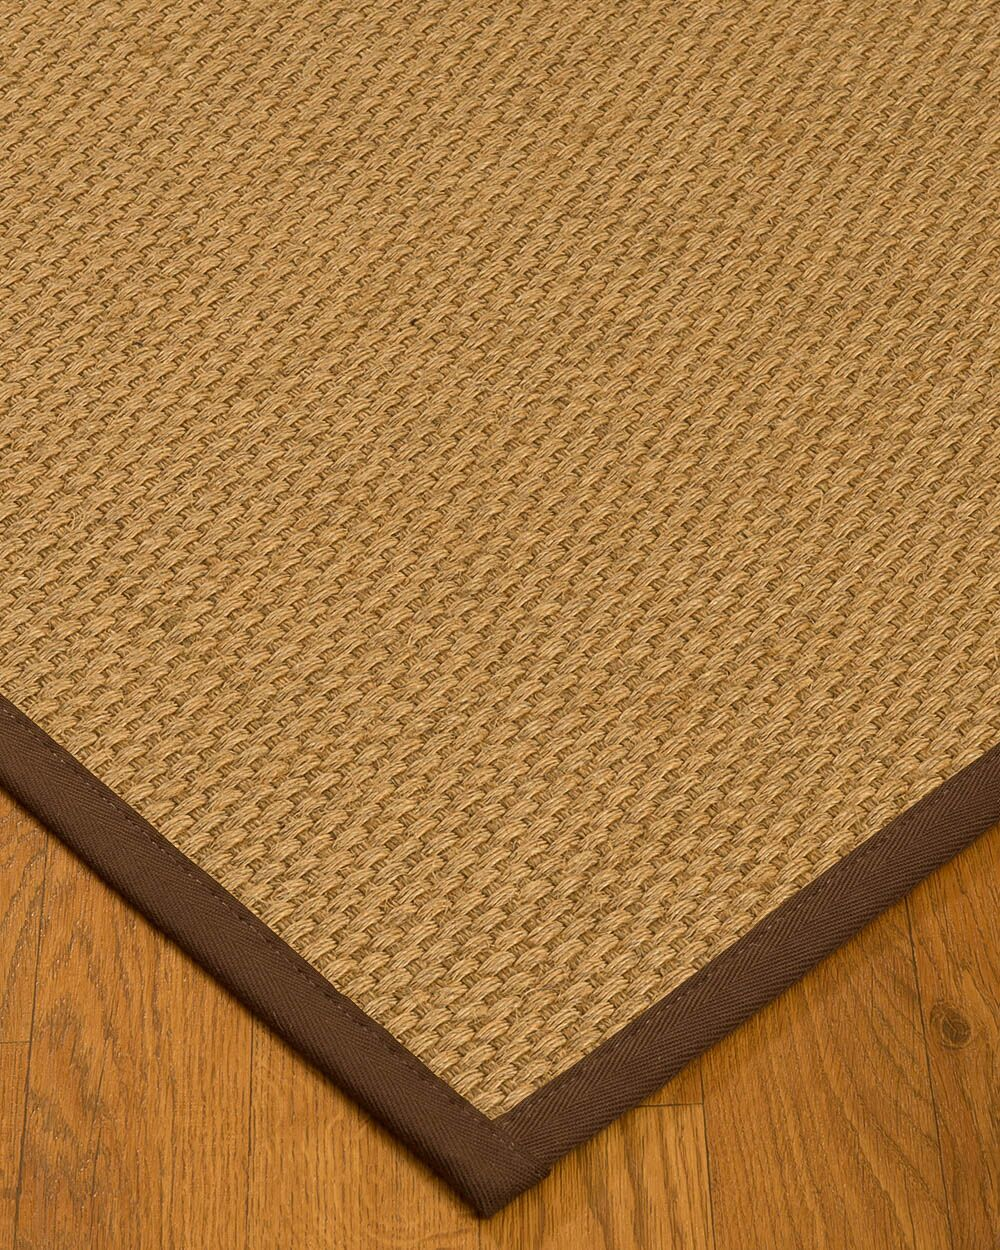 Kimpel Hand-Woven Beige Area Rug Rug Size: Rectangle 3' x 5'